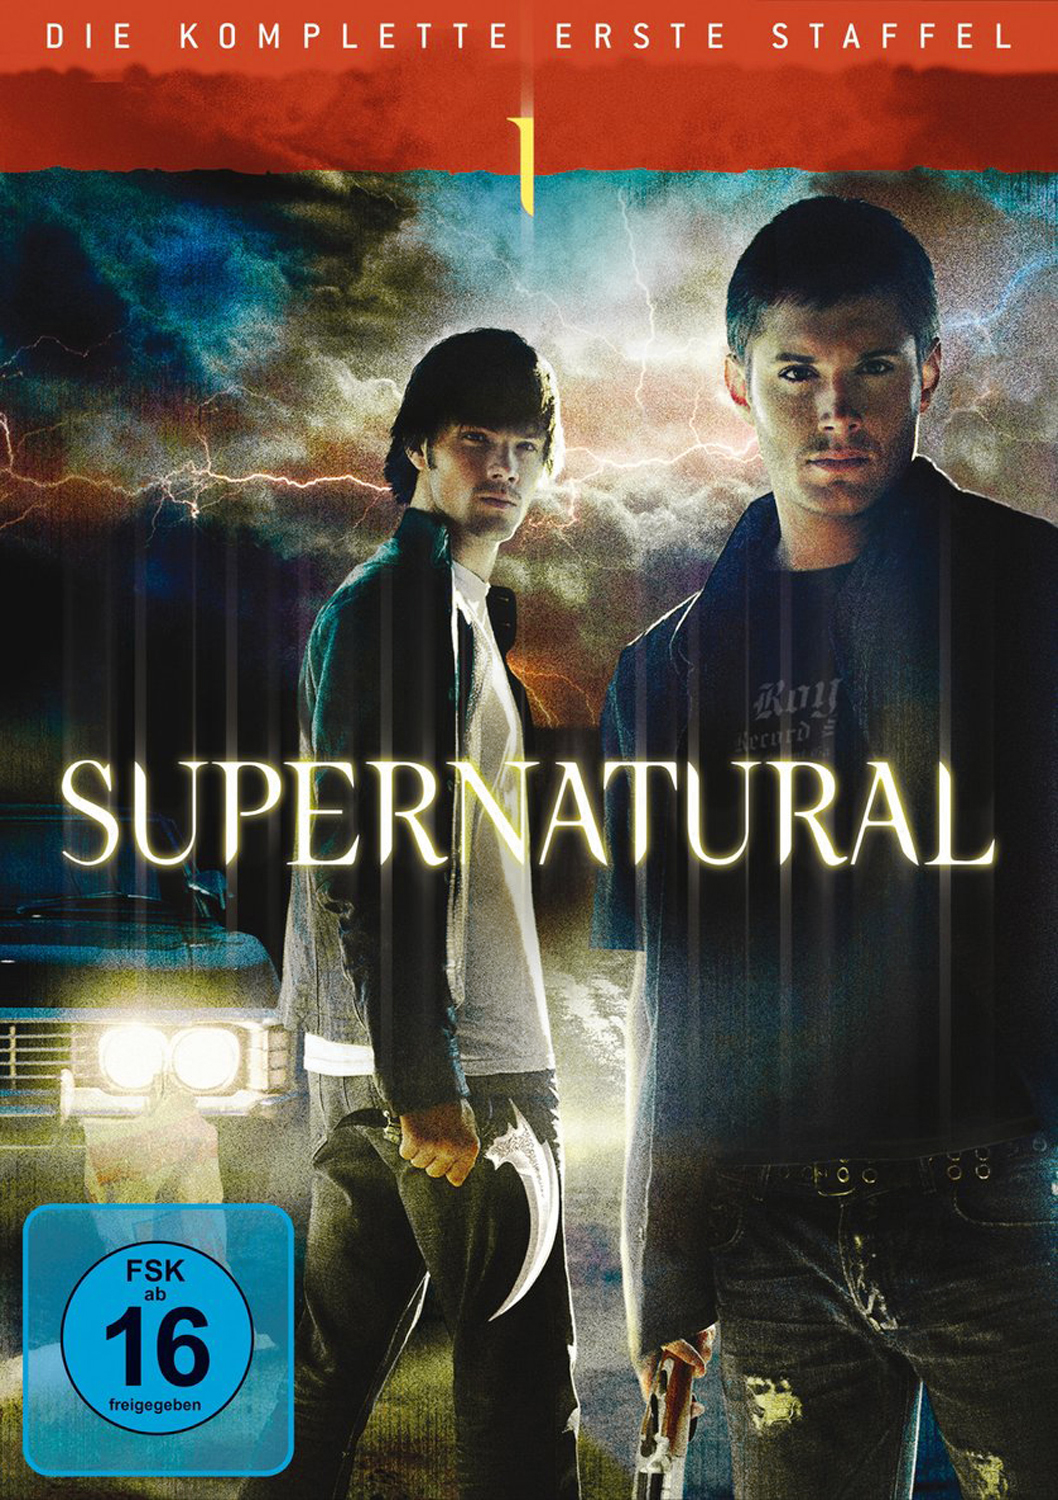 http://vignette2.wikia.nocookie.net/s__/images/e/e2/Supernatural_Staffel_1_DVD_Cover.jpg/revision/latest?cb=20150507072447&path-prefix=supernatural%2Fde